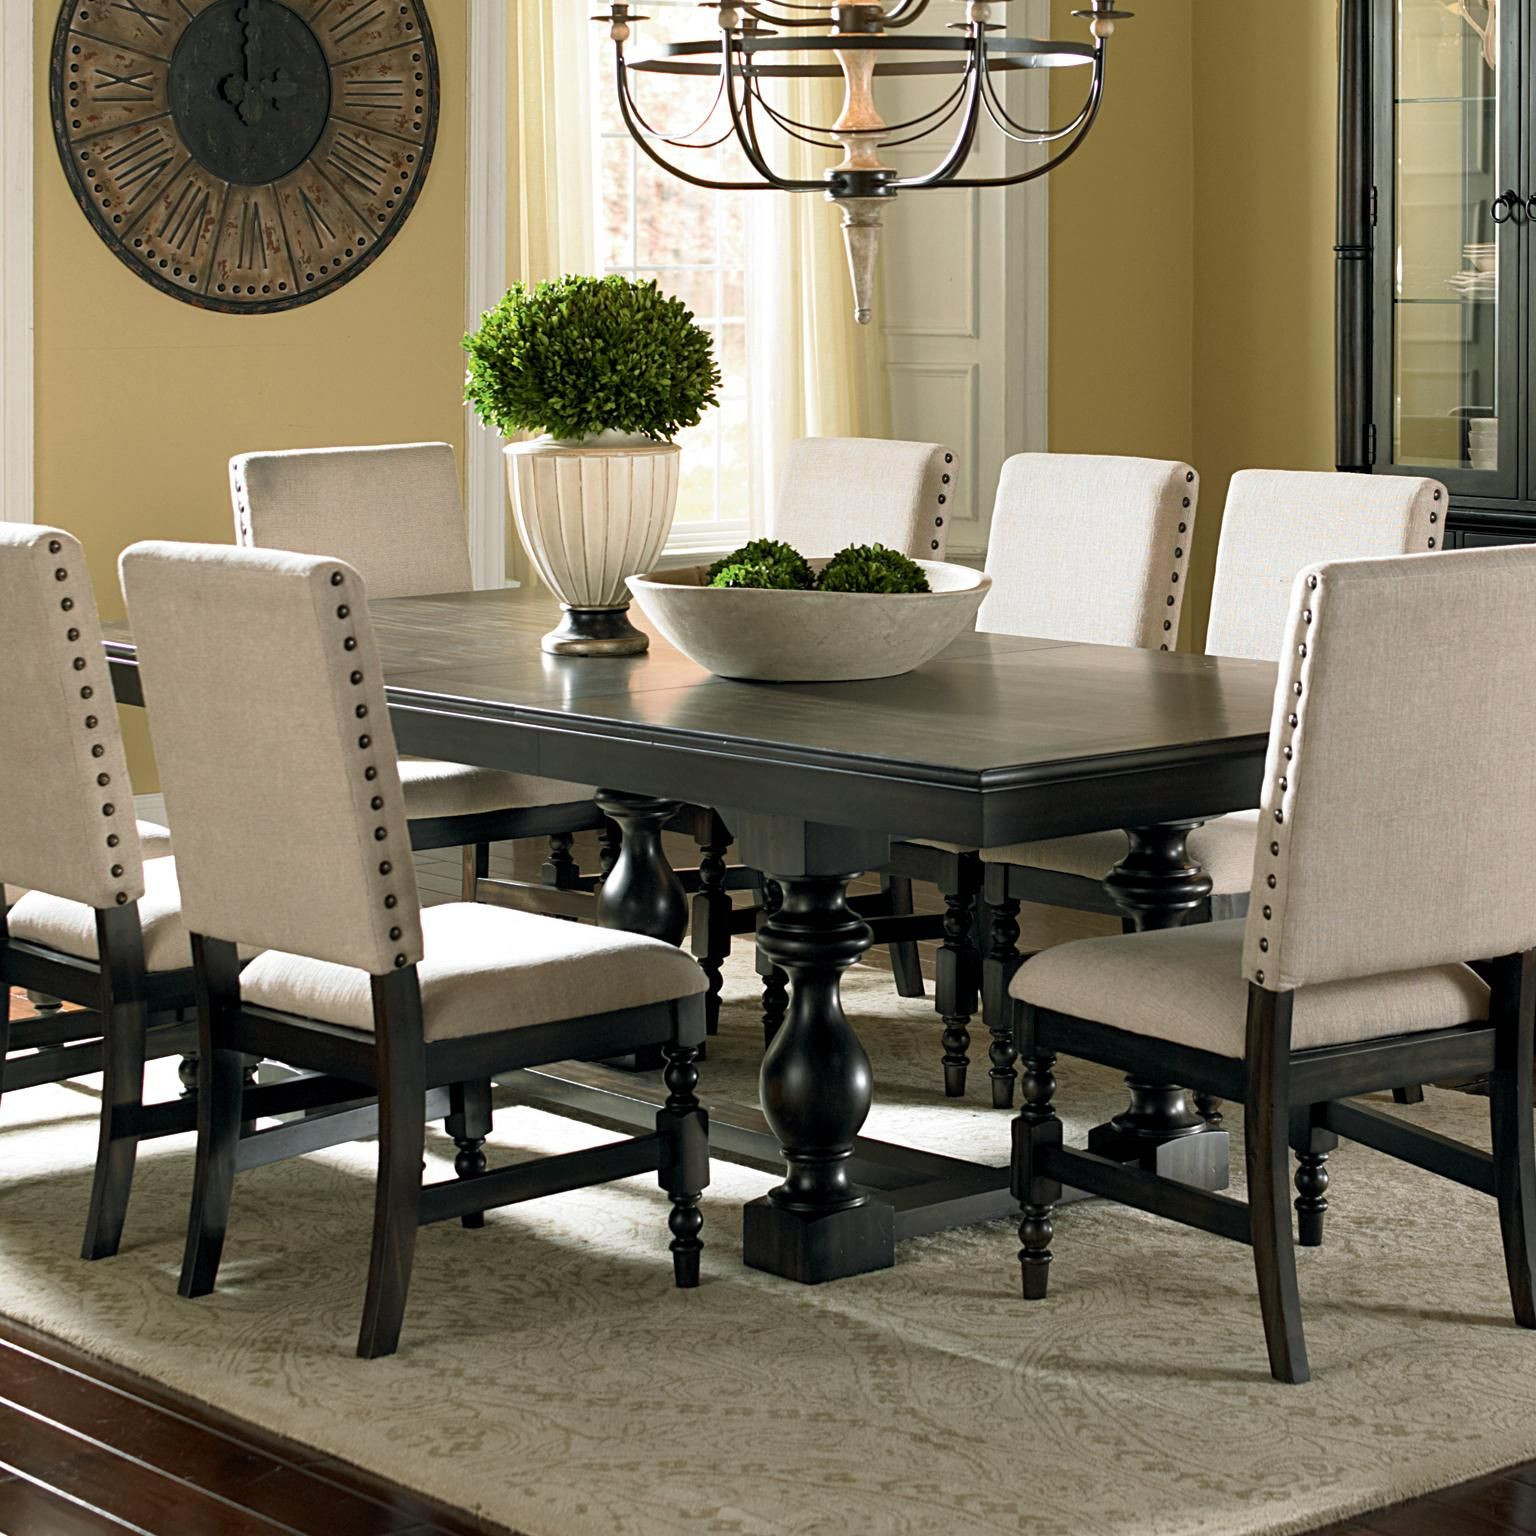 Best ideas about Black Dining Room Chairs . Save or Pin Leona Cottage Rectangular Antique Black Dining Table with Now.